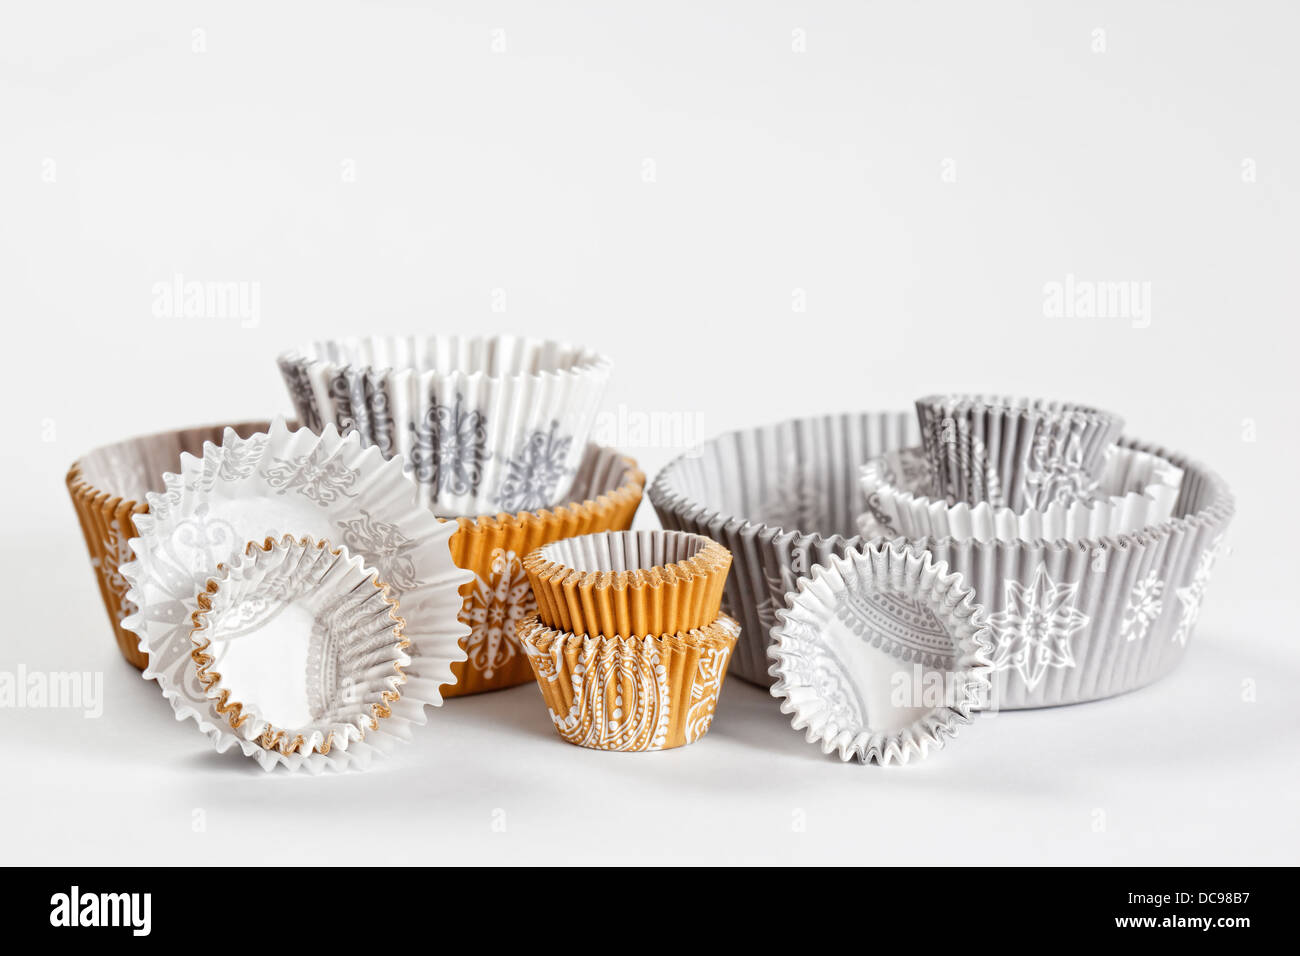 Baking Paper Cups For Cupcakes Or Muffins Stock Photo 59211131 Alamy